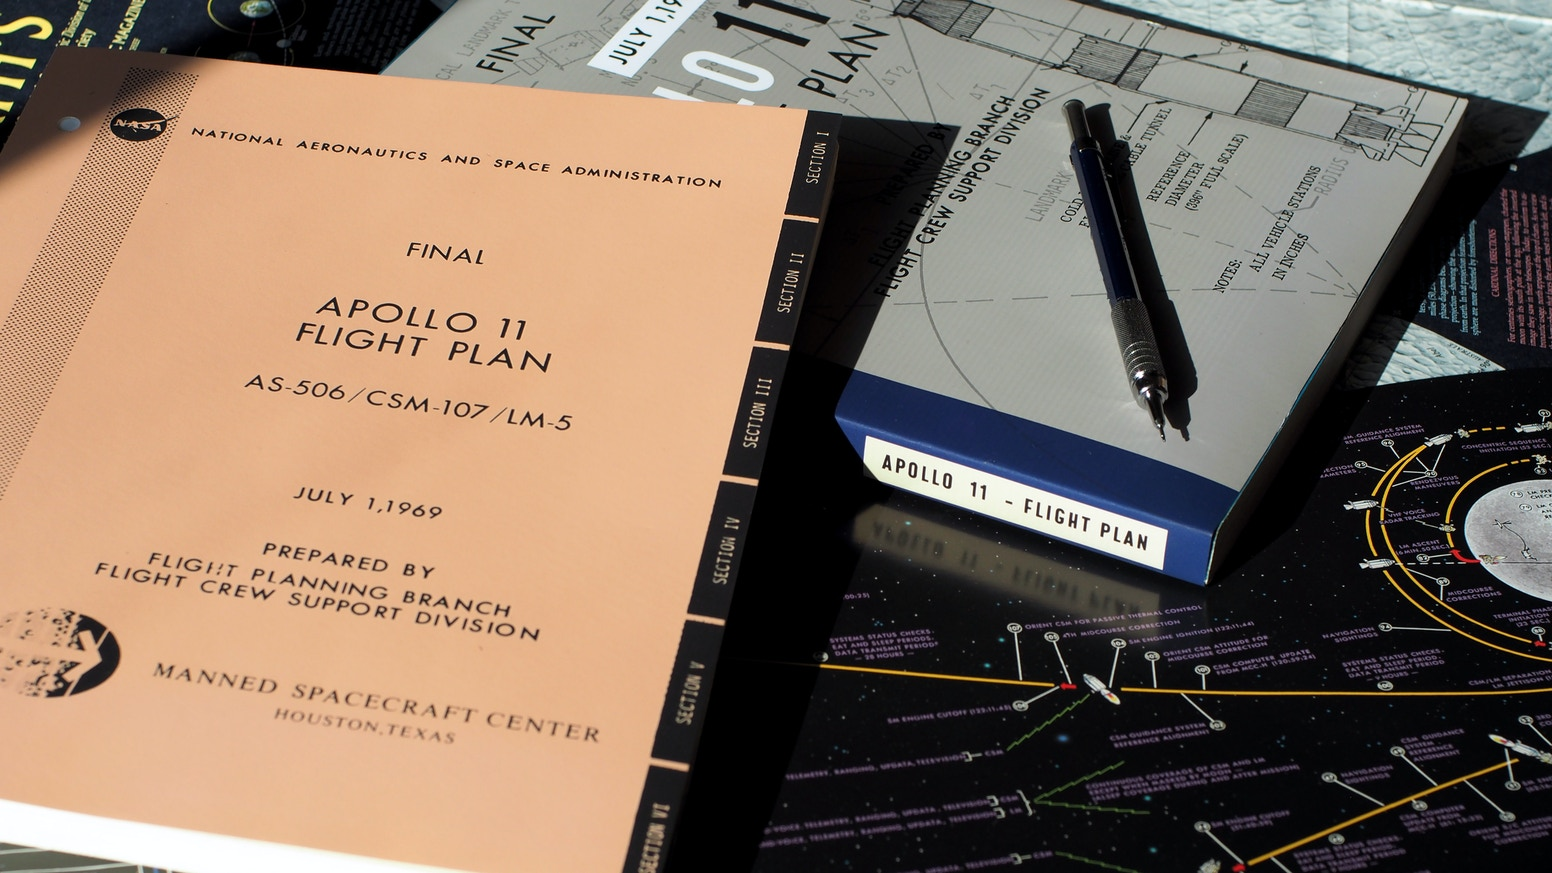 The original 1969 apollo 11 flight plan restored and reprinted in honor of the 50th